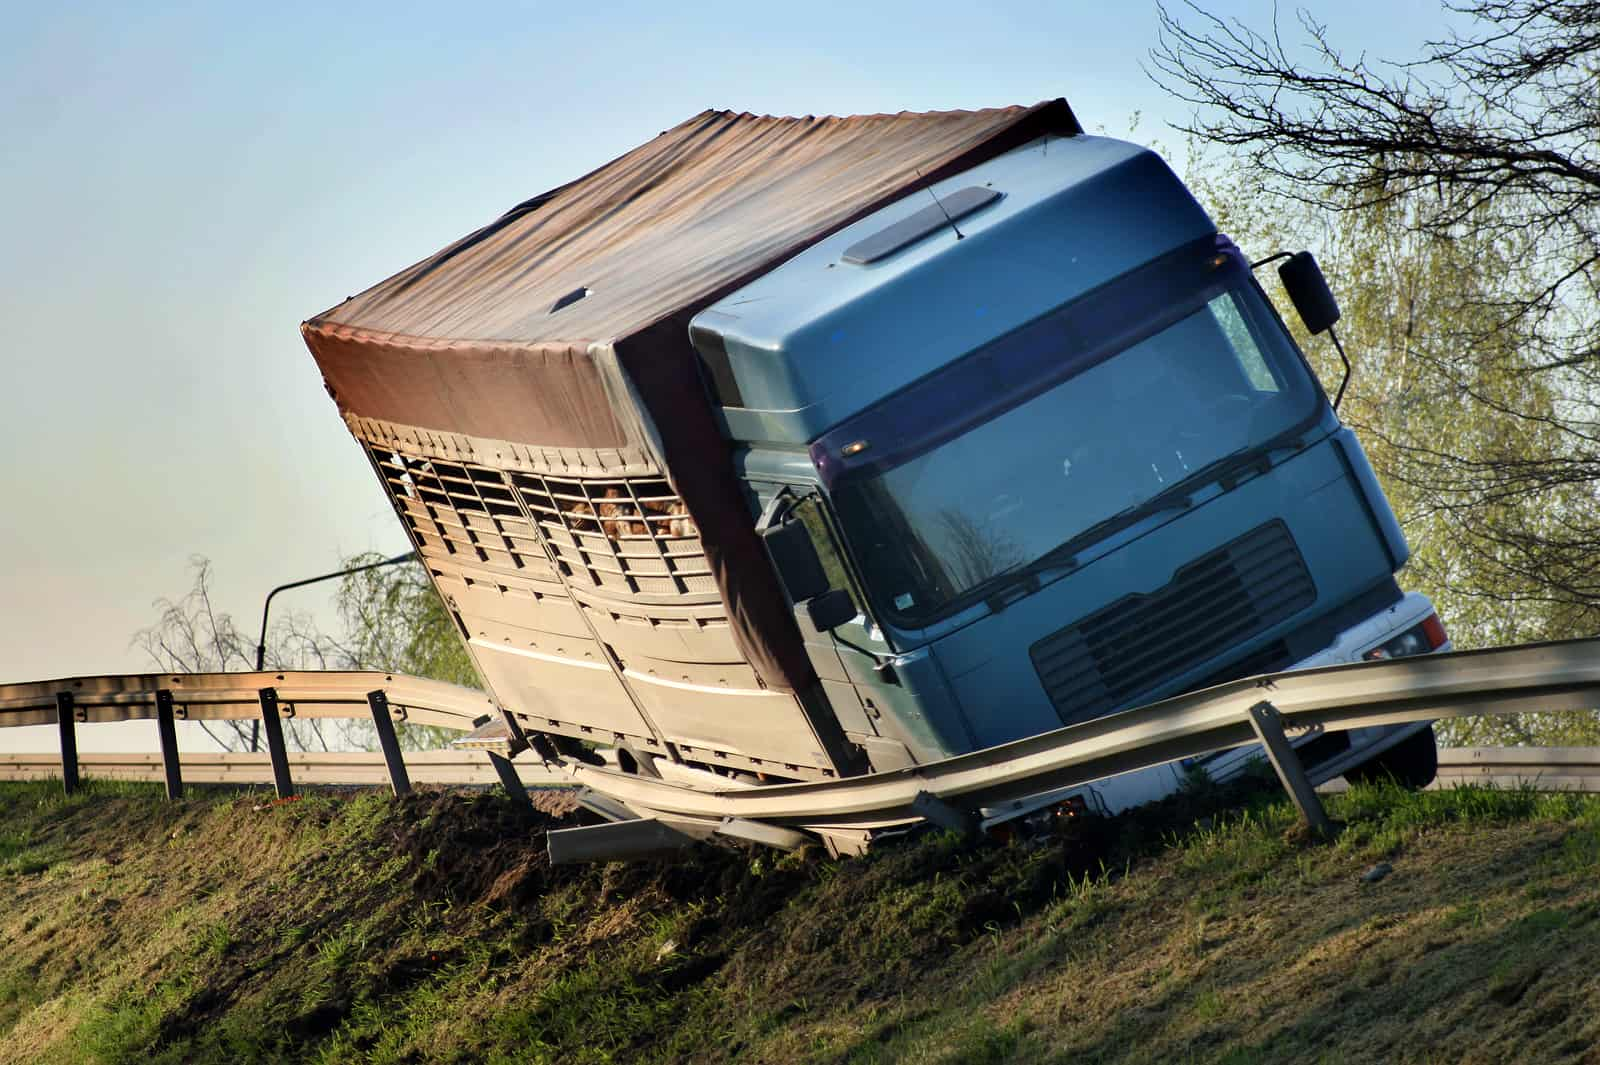 Trucking Accident 1 - What 5 Signs Can Help You Avoid Unsafe Commercial Truck Drivers?